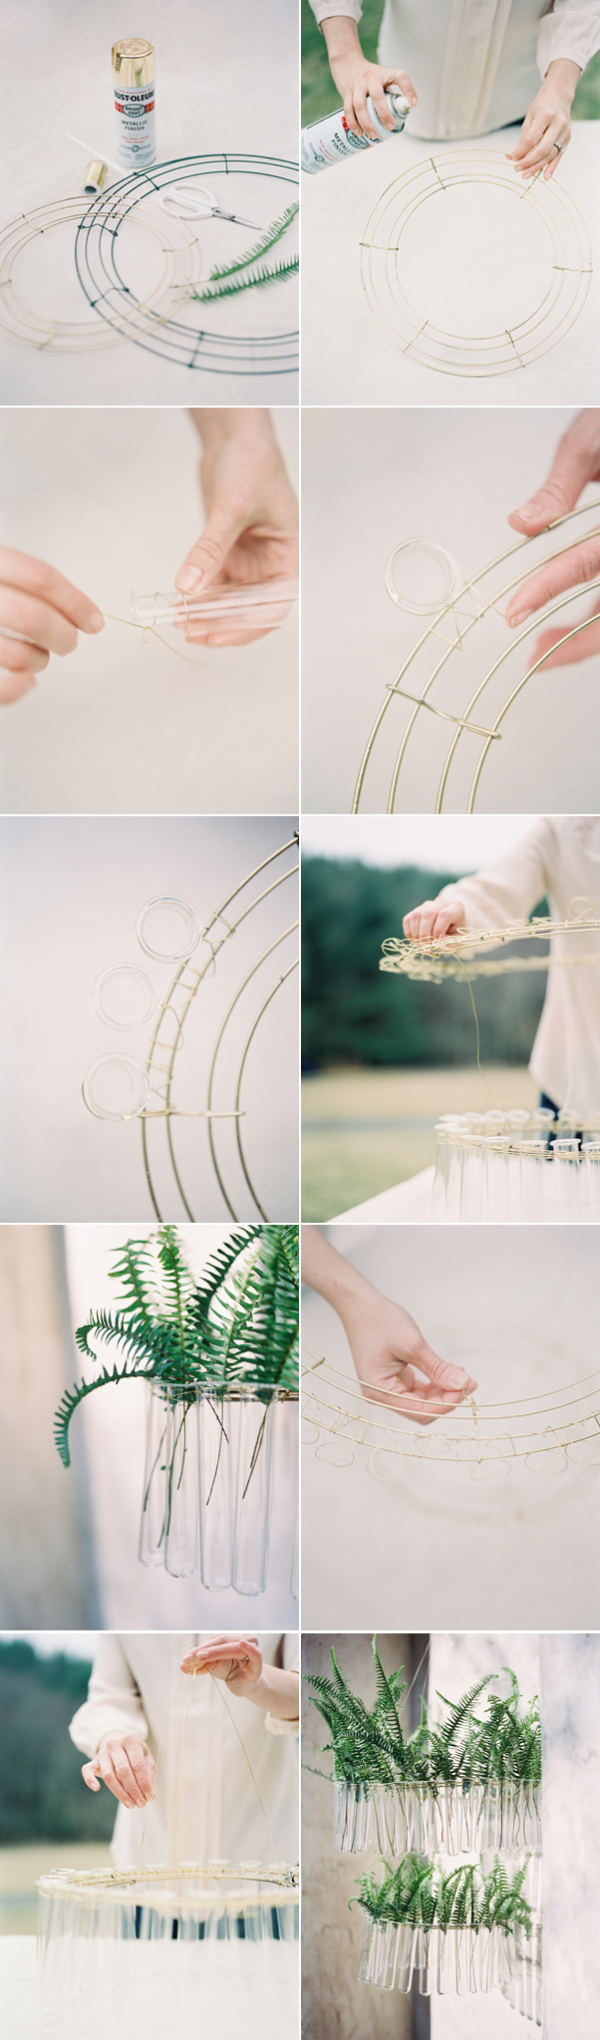 diy tube a essai vegetal 2